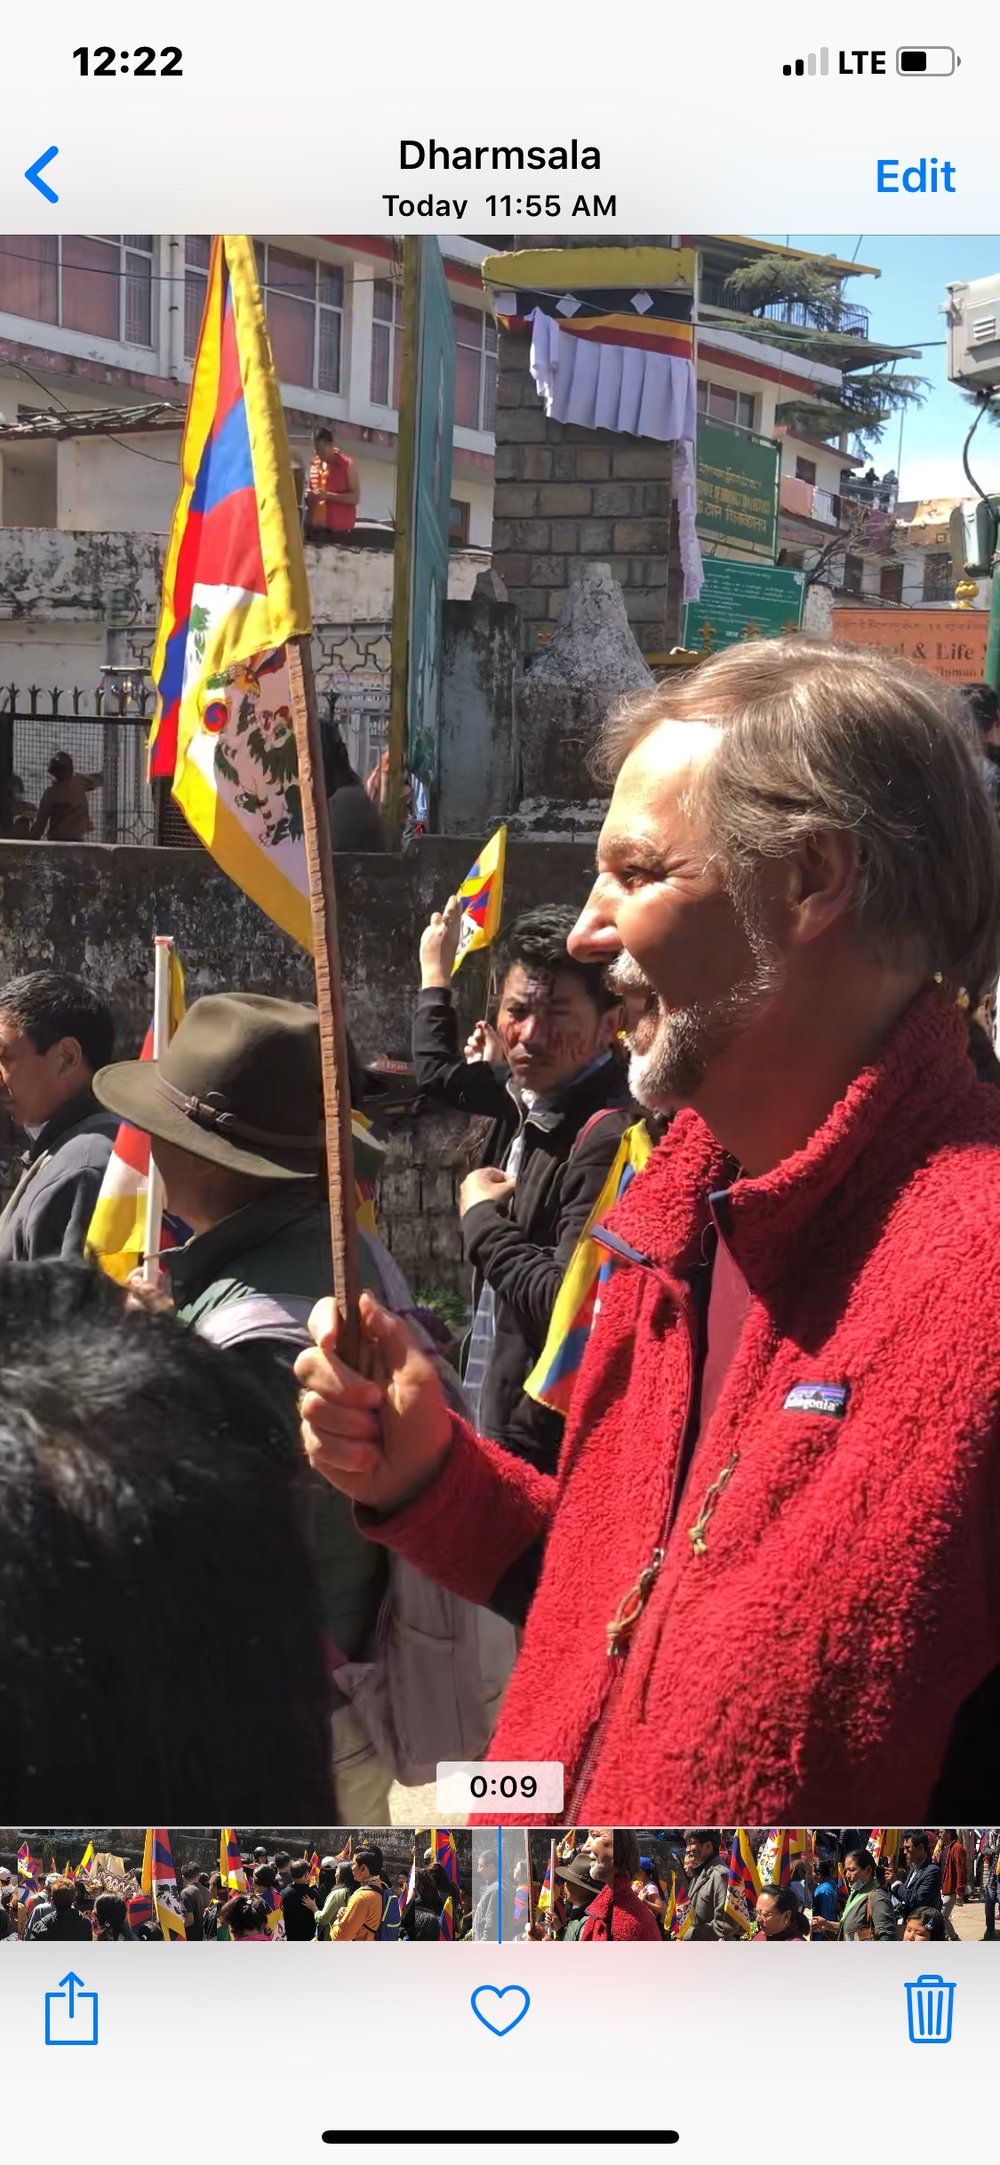 Photo of Bruce Pardoe in Dharamsala by Cindy Shaw.jpg